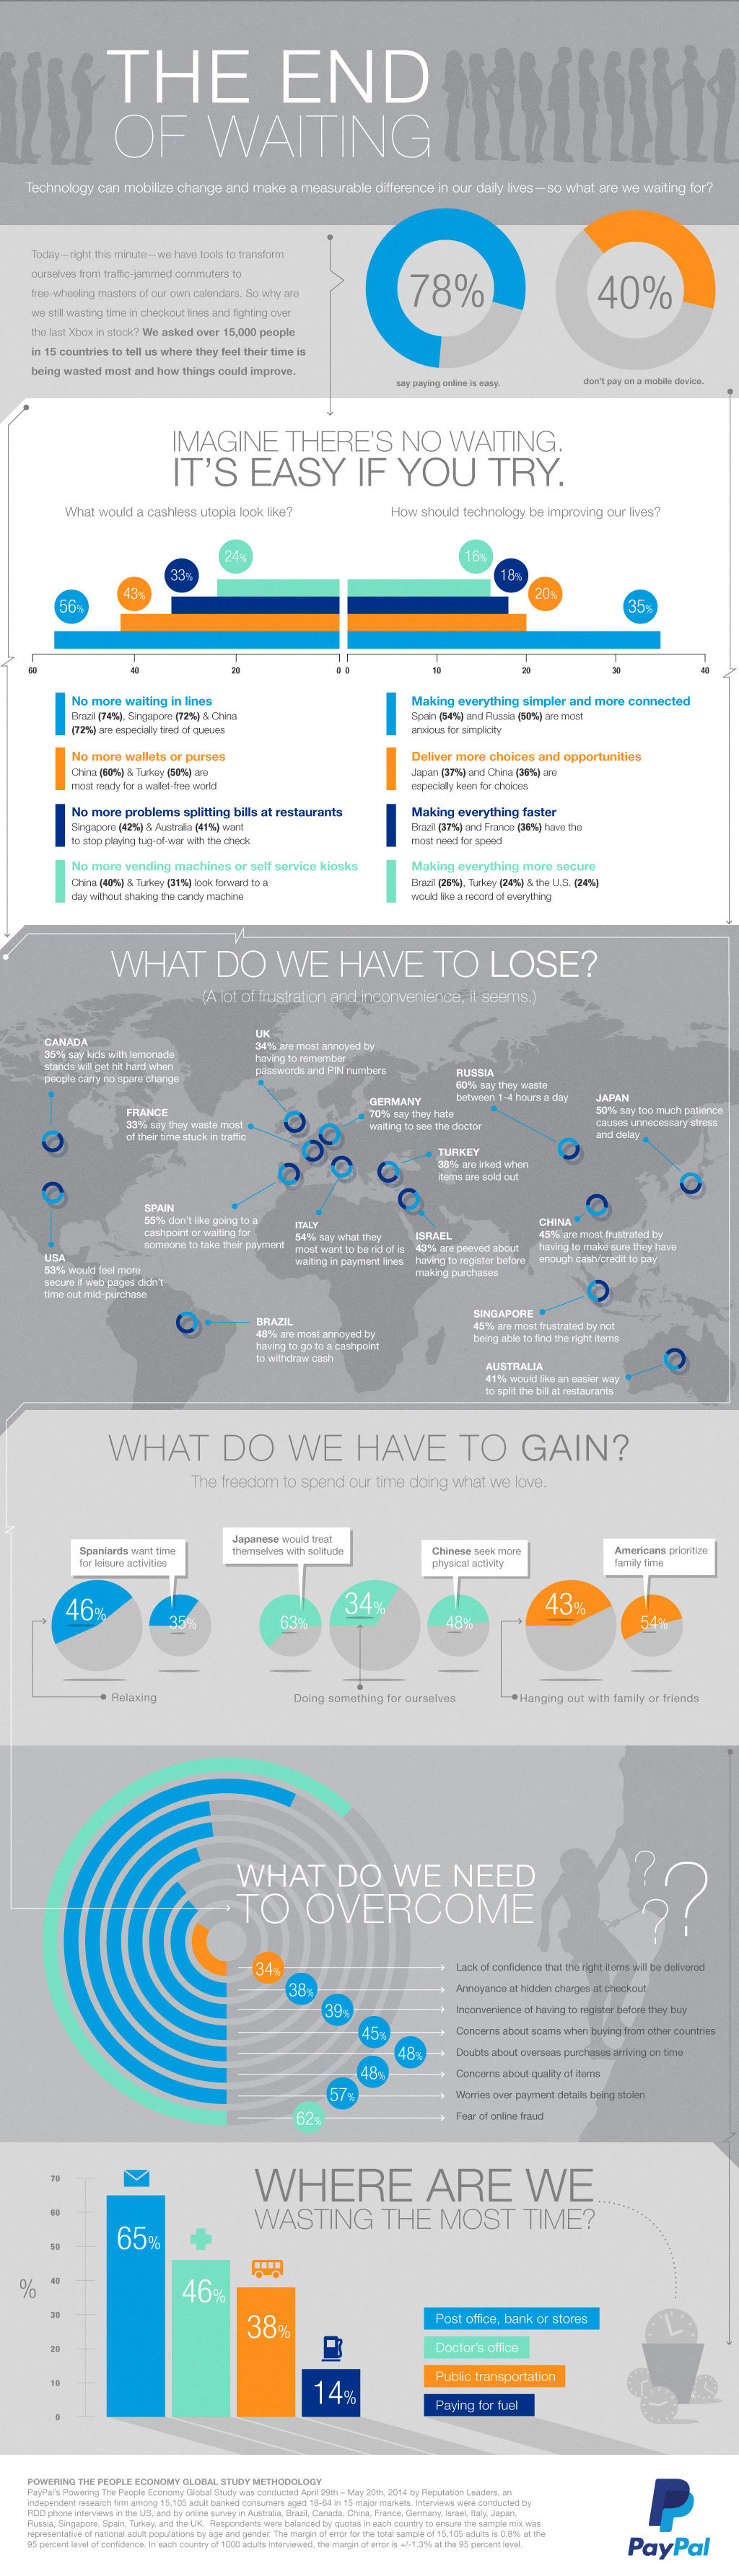 Time, Money and Tech: PayPal Study Reveals Global Attitudes (Graphic: Business Wire)